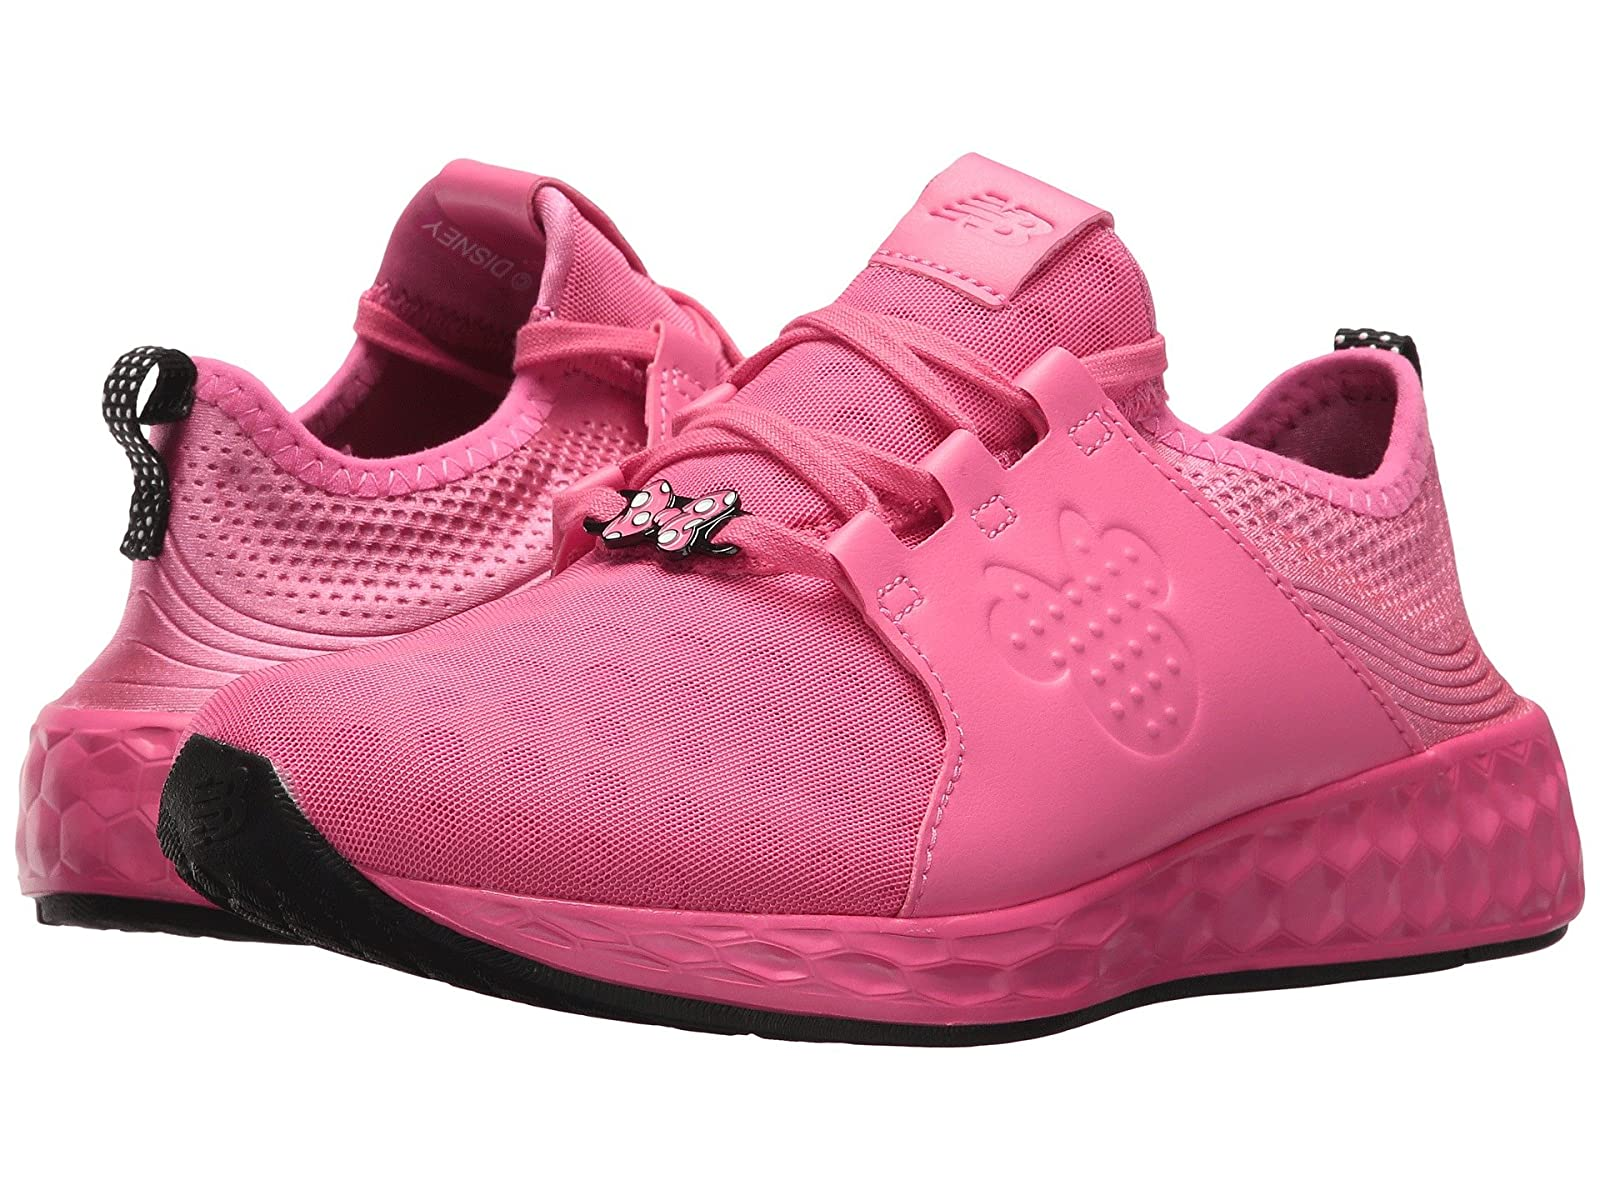 New Balance Kids KJCRZv1G - Minnie Rocks the Dots (Big Kid)Atmospheric grades have affordable shoes